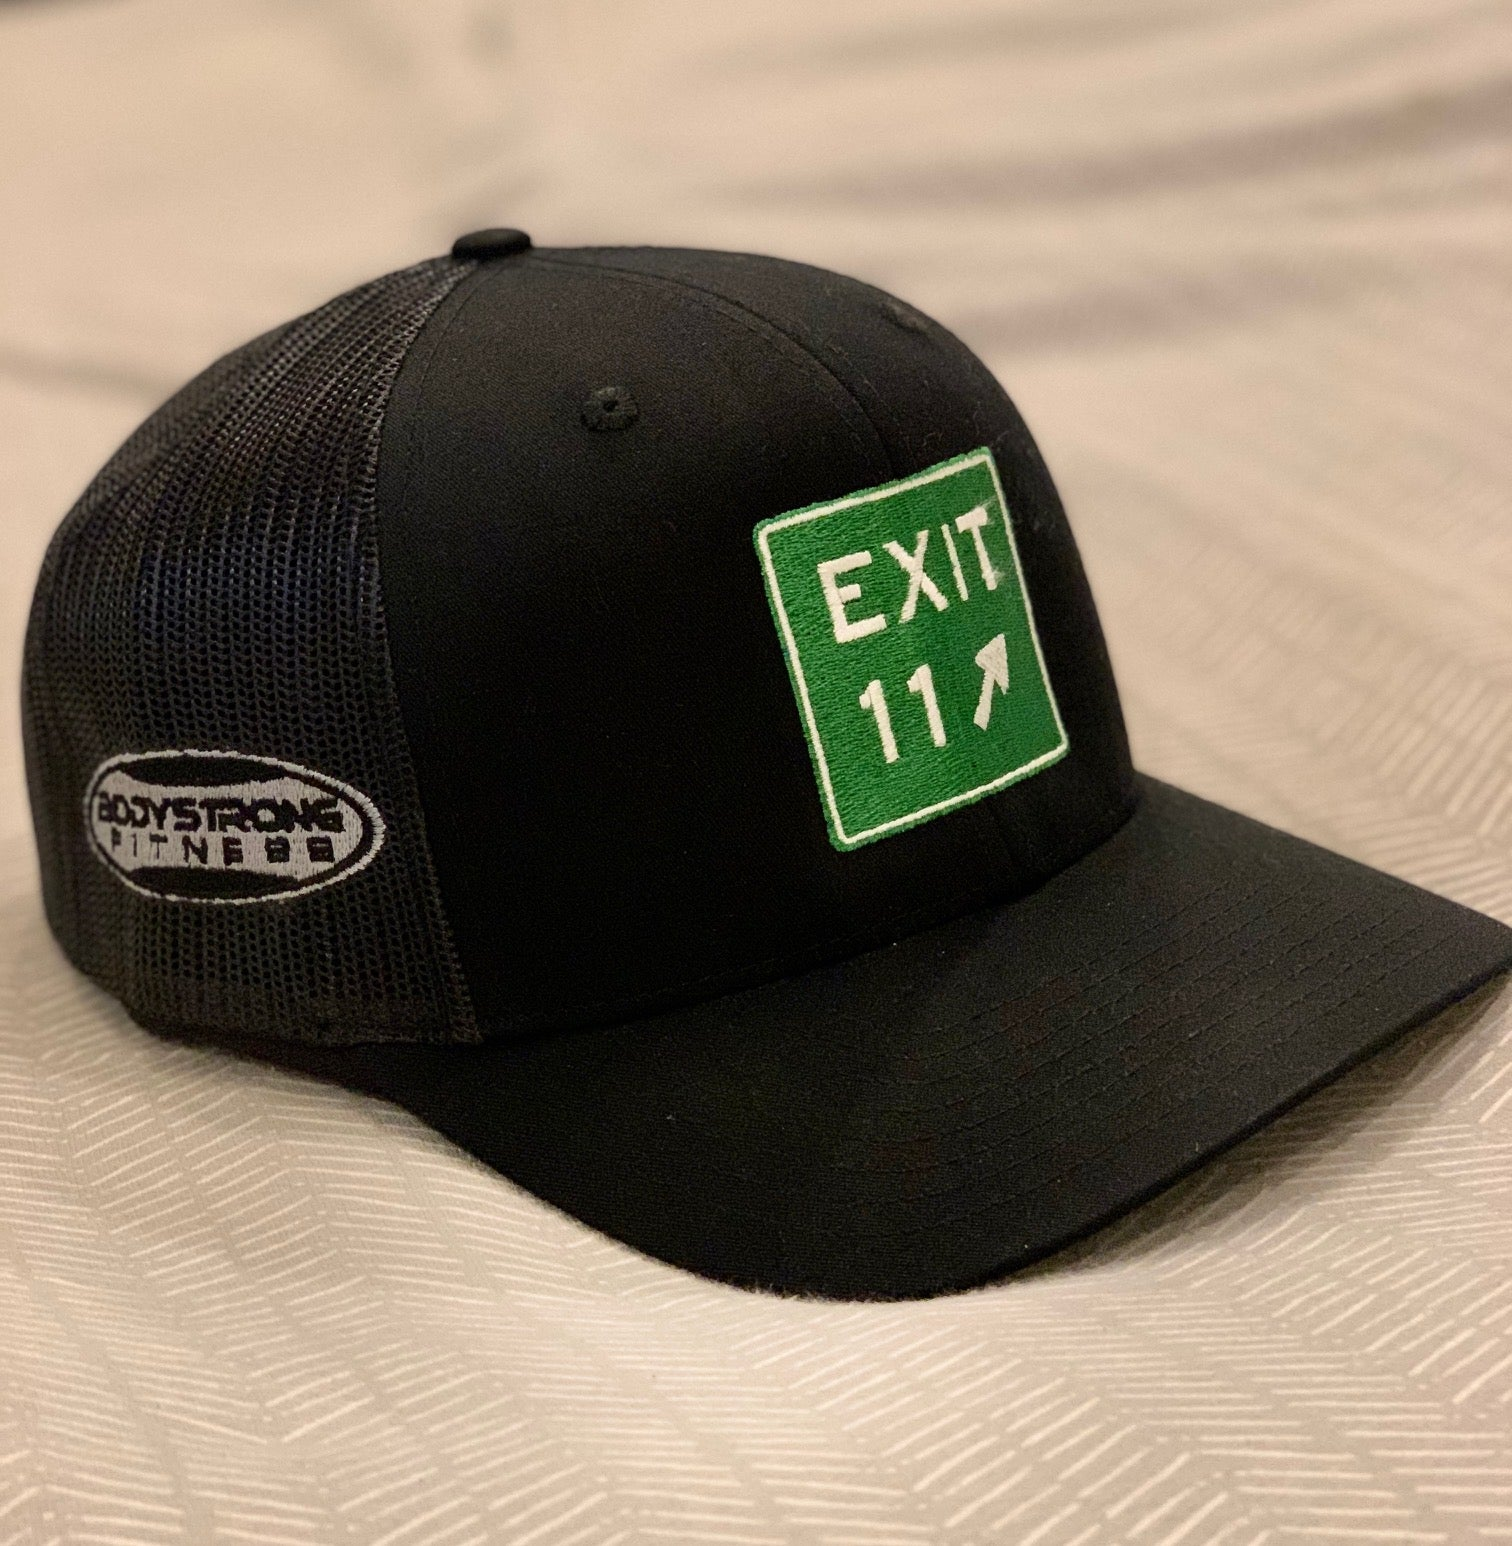 Black Richardson hat with the EXIT 11 sign on the fron and Bodystrong logo on the side